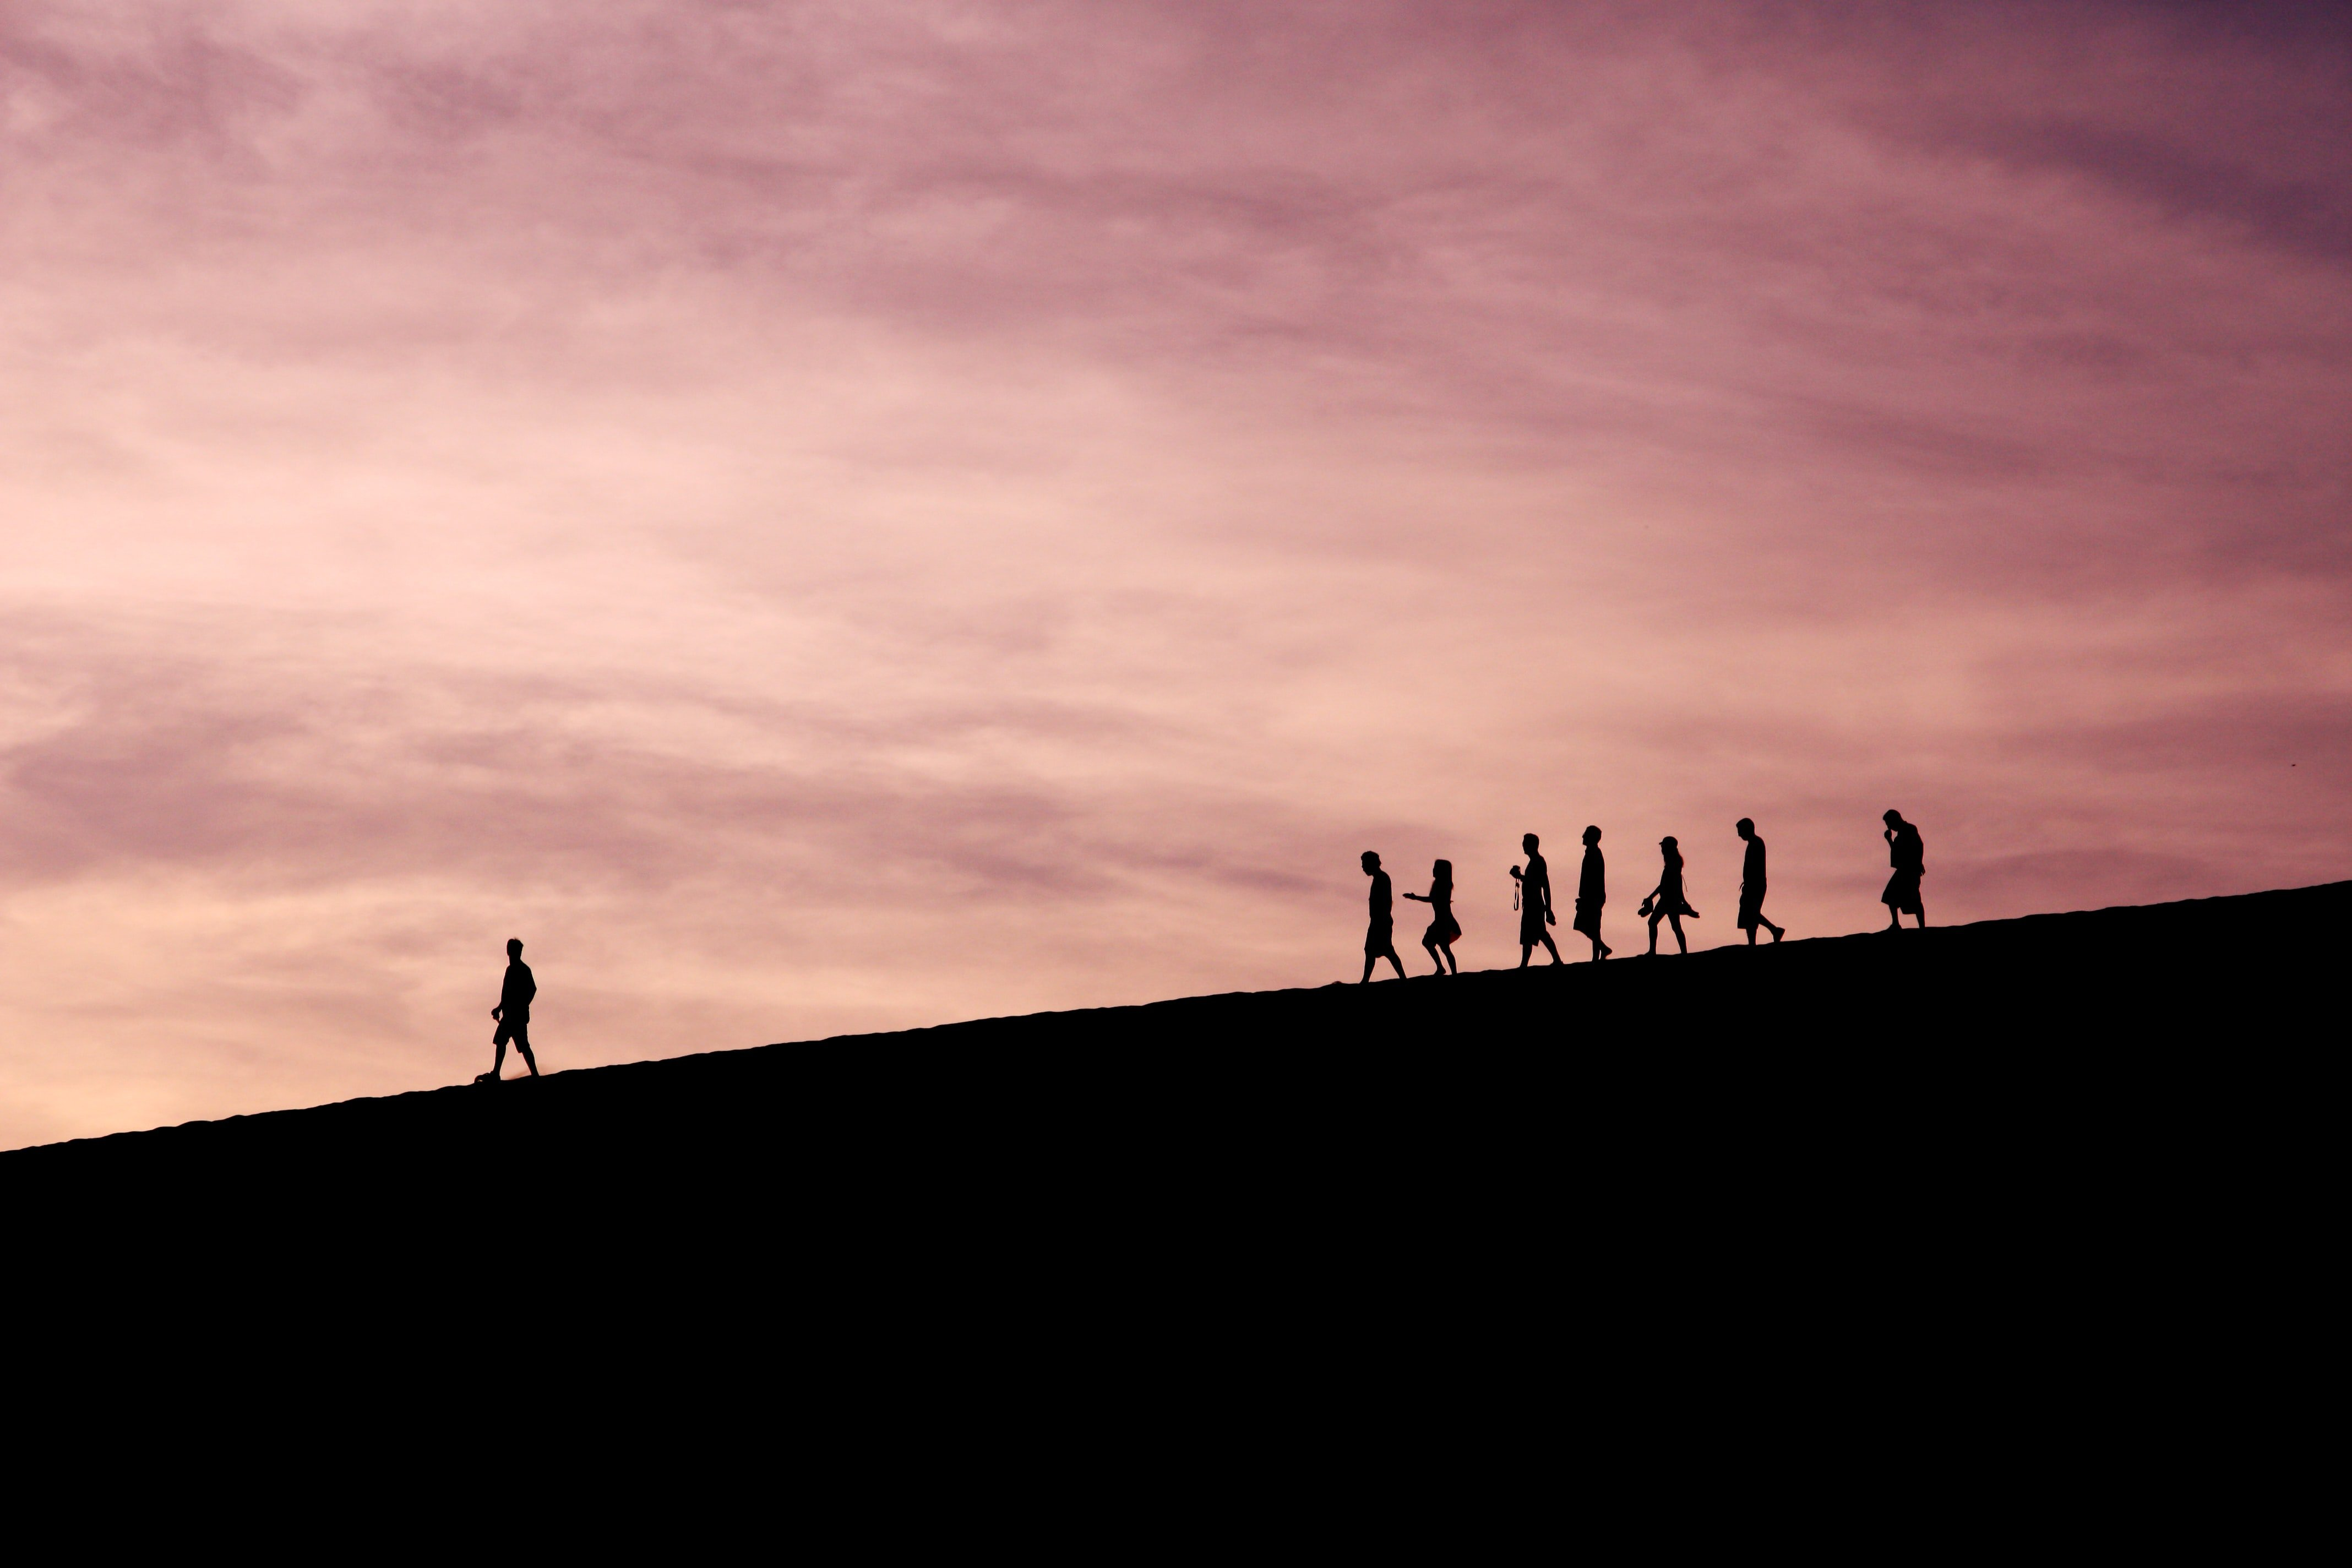 group of silhouettes running down hill, one ahead of others